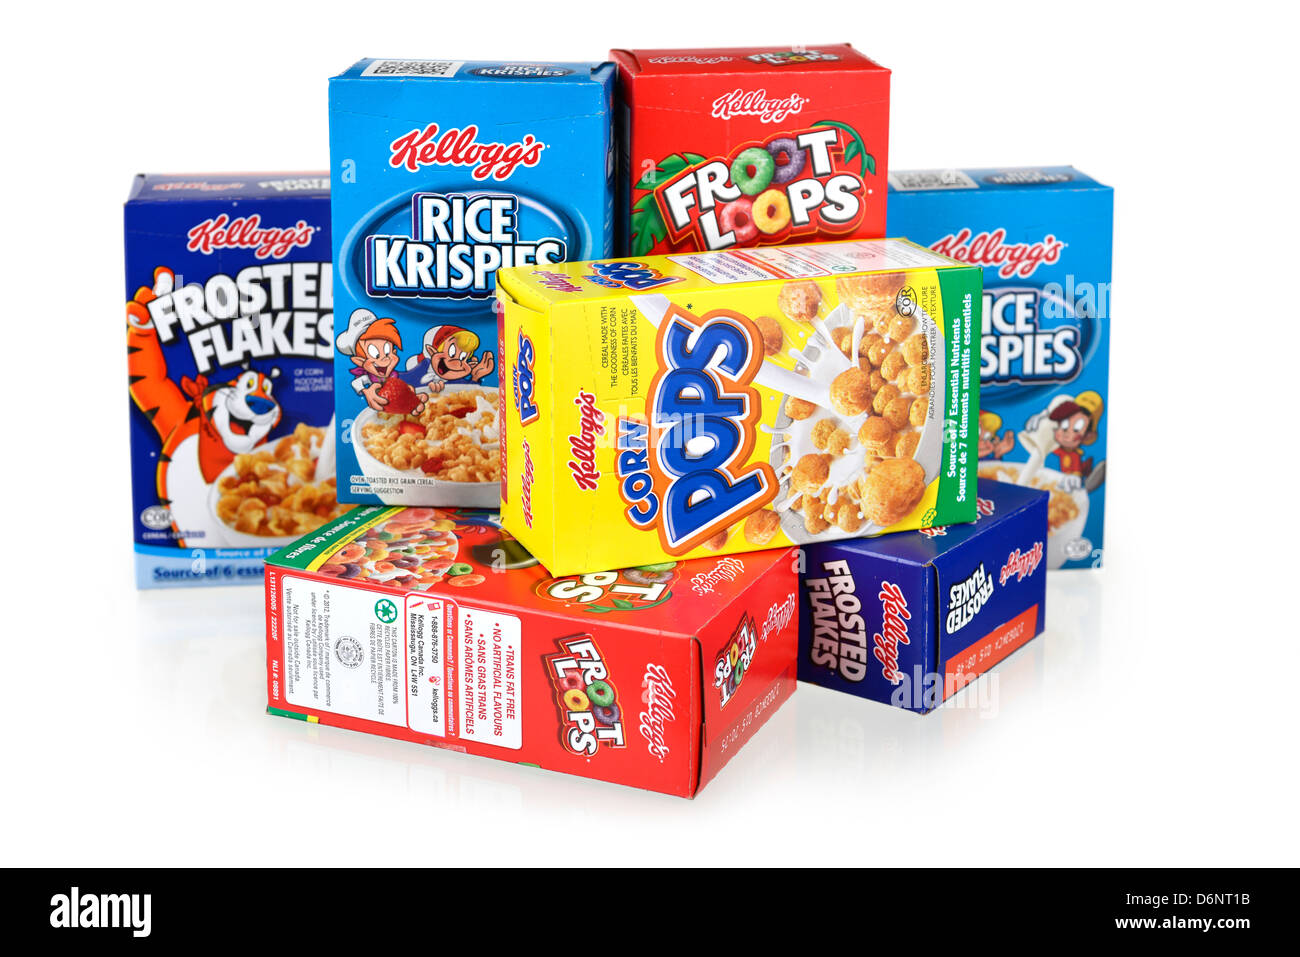 Cereal Boxes, Kellogg's - Stock Image